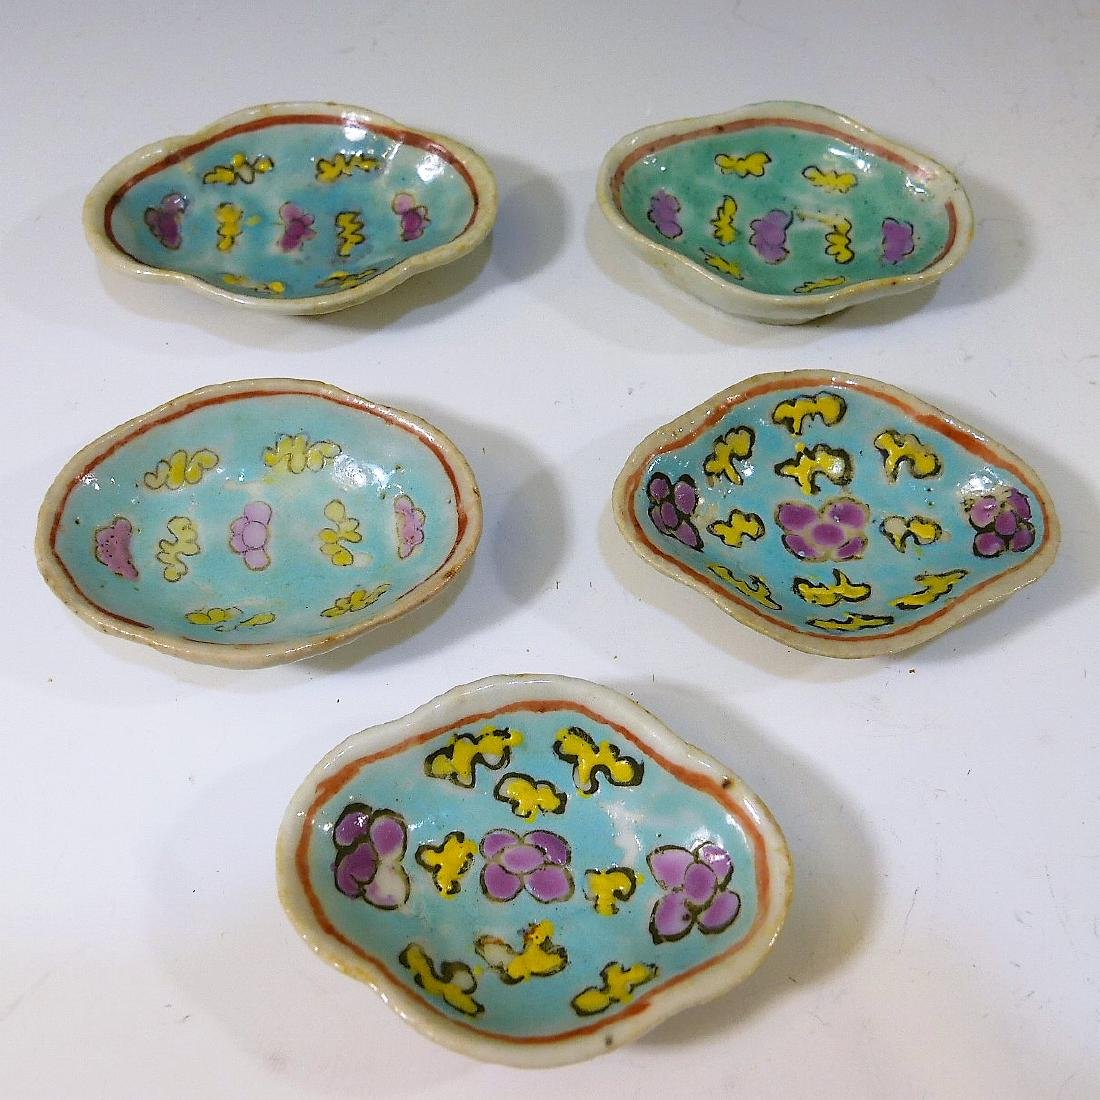 5 CHINESE ANTIQUE FAMILLE ROSE PORCELAIN DISH - QING